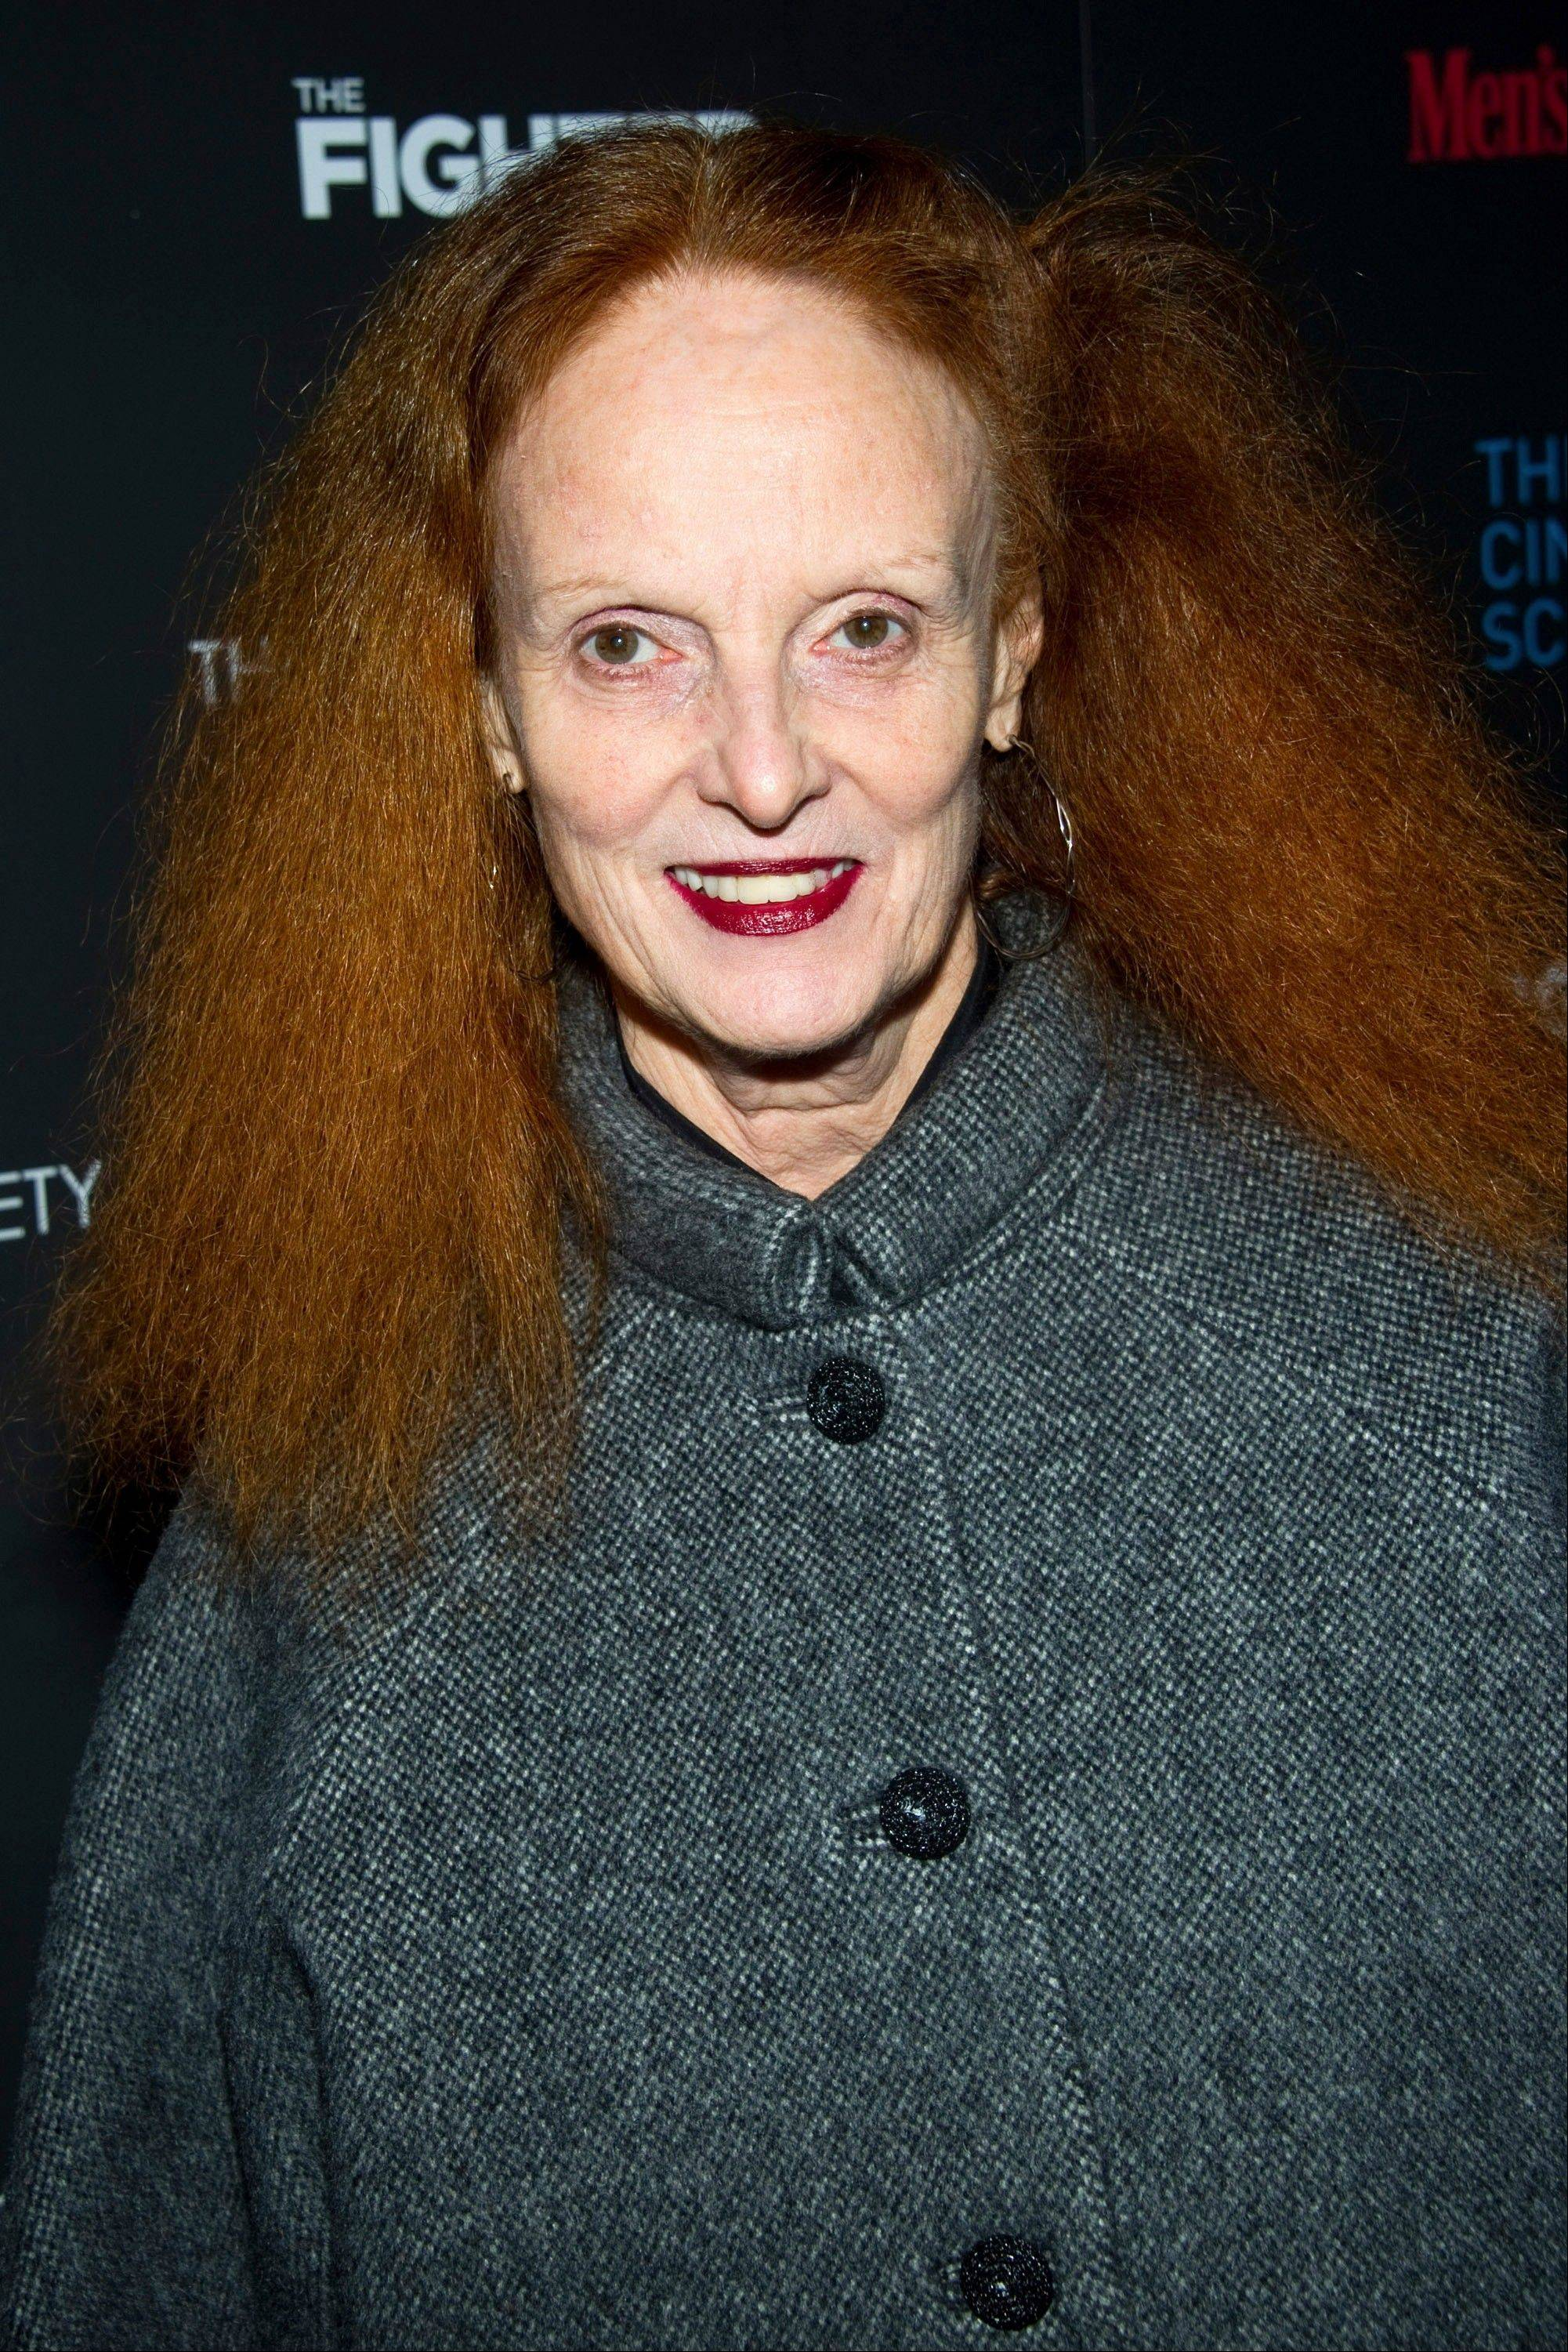 Grace Coddington, the creative director of Vogue, will tell her story from the front row of fashion in a memoir. The as-yet-untitled book with be written in collaboration with Vanity Fair style editor-at-large Michael Roberts, a longtime friend and colleague. It will include some of Coddington's own illustrations.